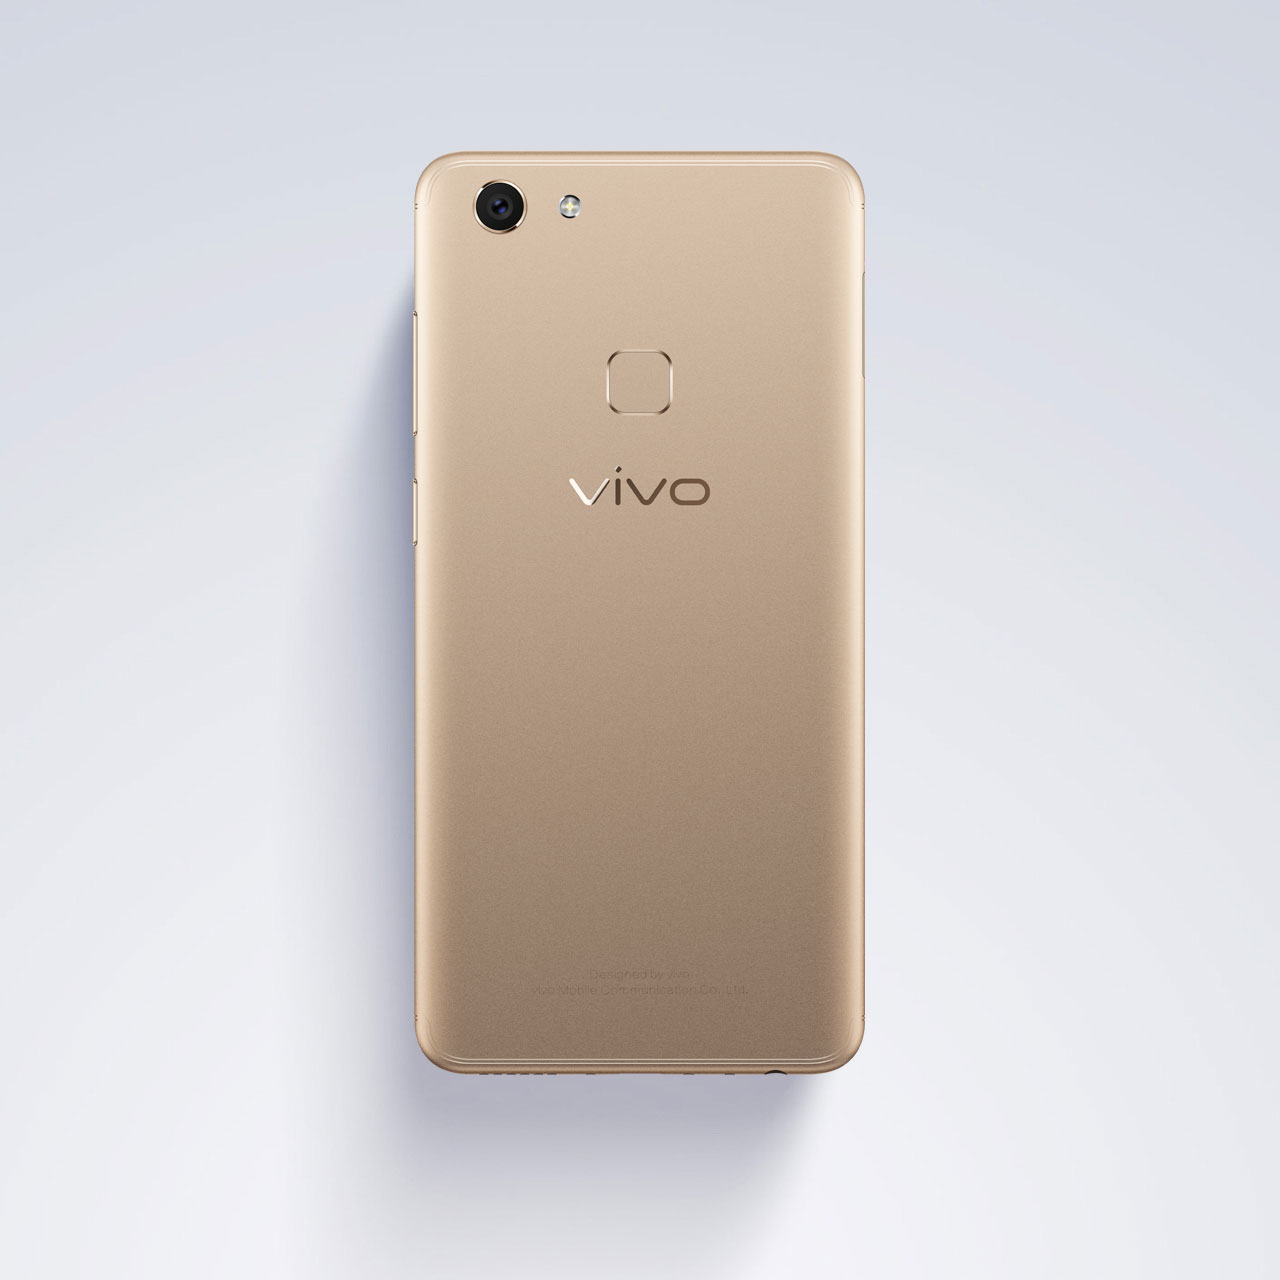 Up for the Vivo Selfie Challenge?! and Win a Vivo Smartphone